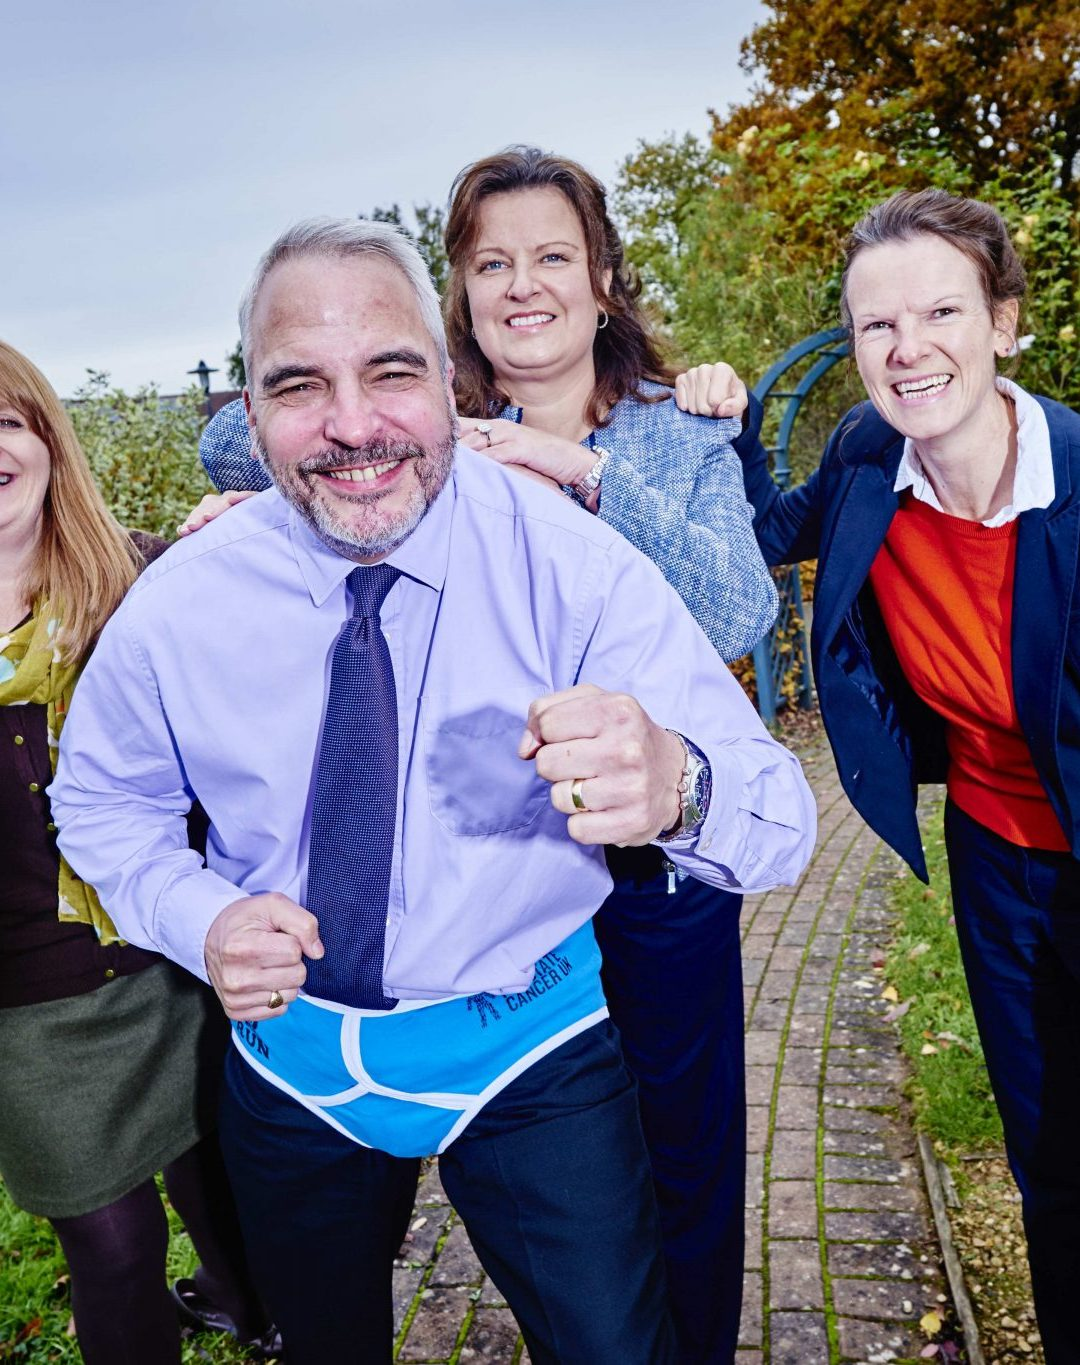 Worcestershire law firm backs Prostate Cancer UK through Go Dad Run donation